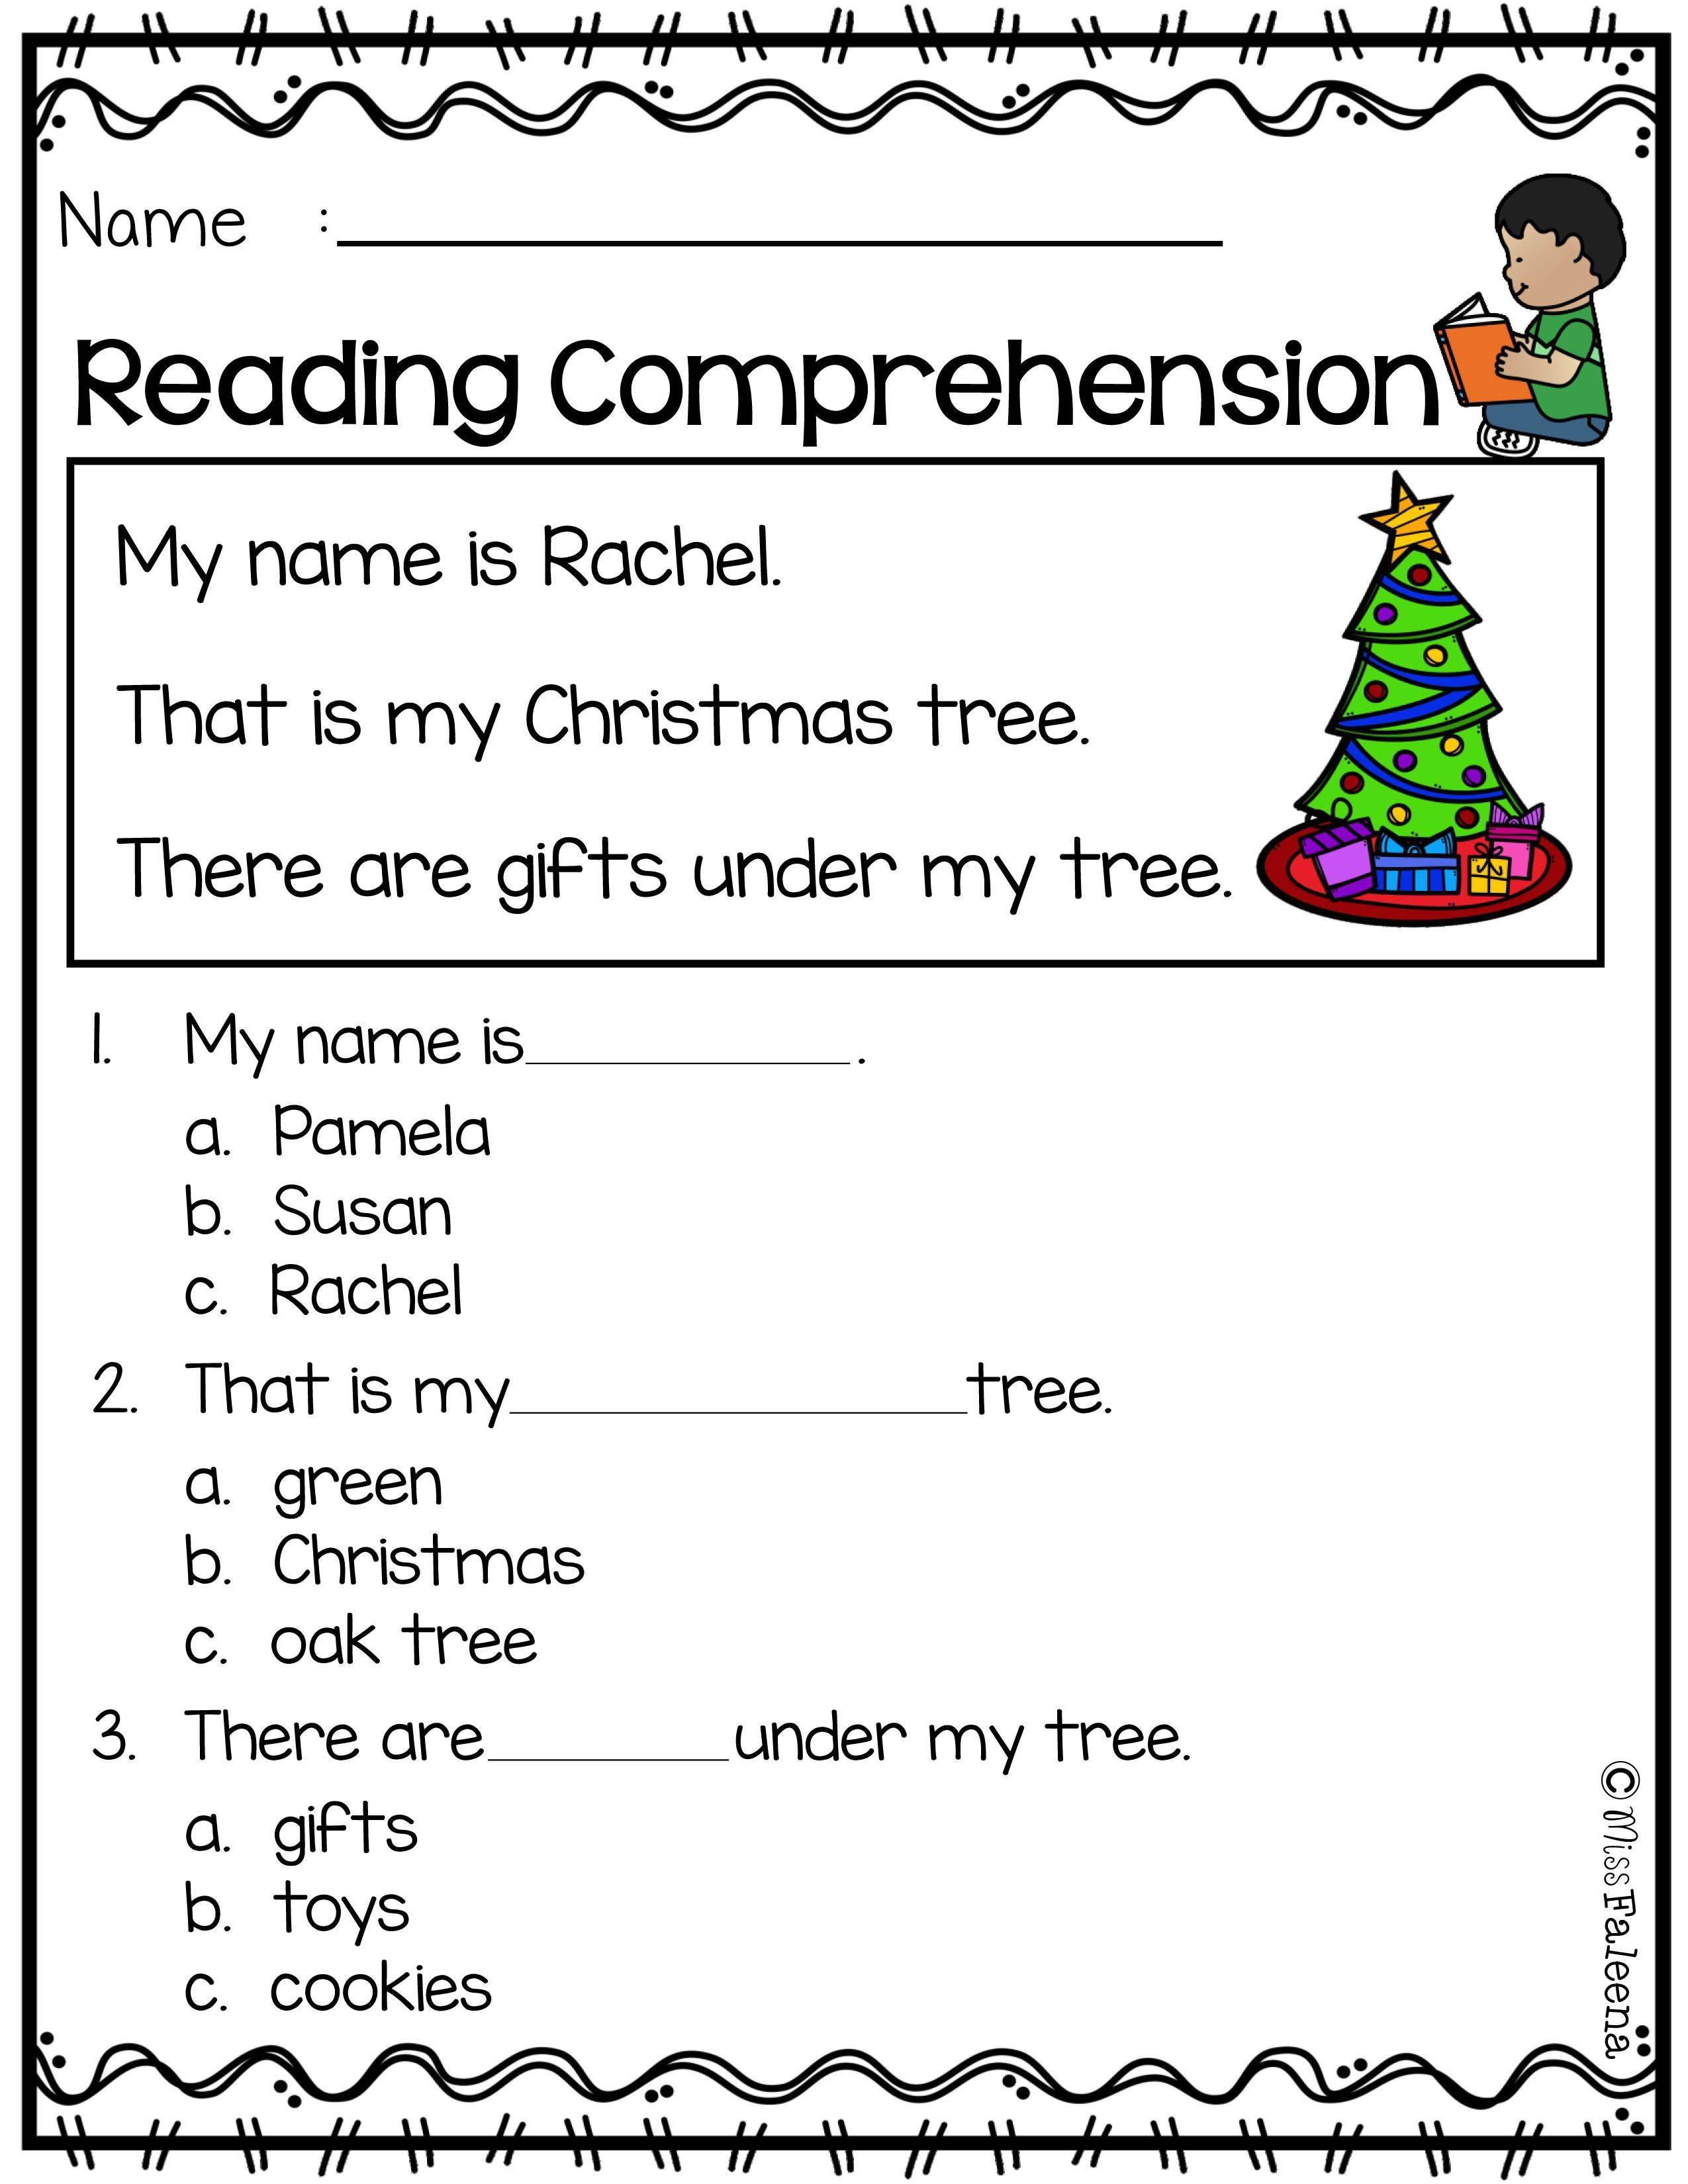 1st Grade Comprehension Worksheets Free 1st Grade Reading Prehension Worksheets Multiple Choice